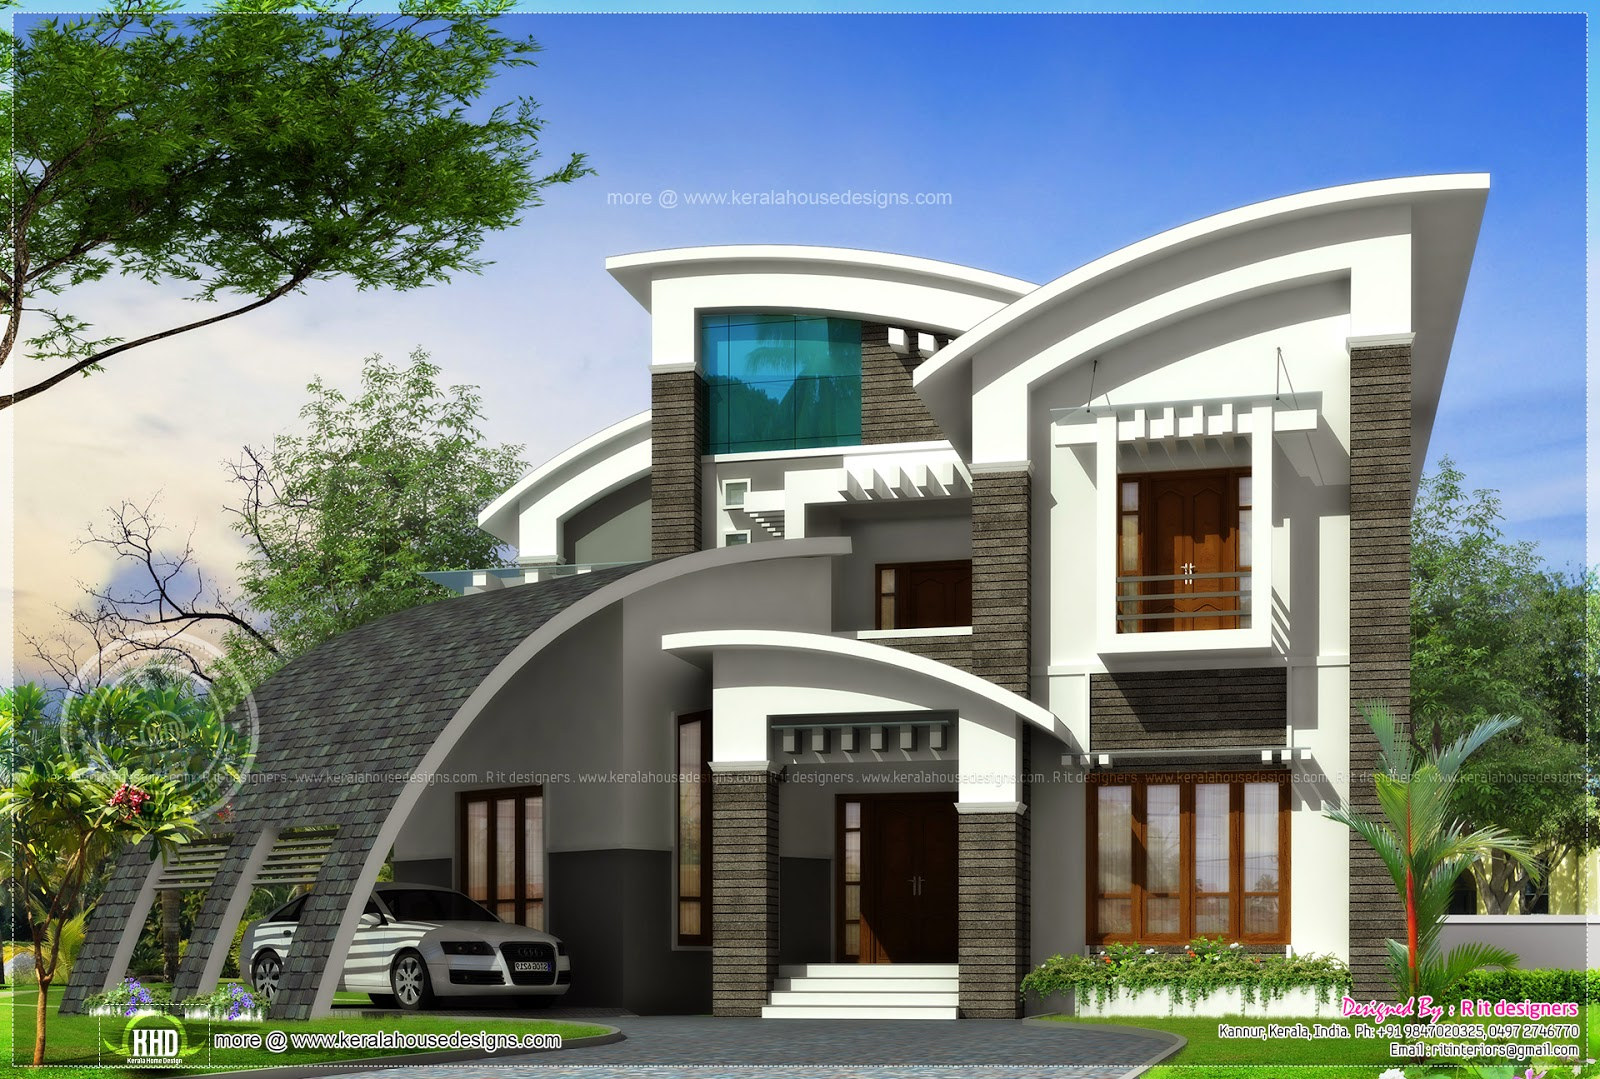 Super luxury ultra modern house design kerala home for Luxury home plans with photos